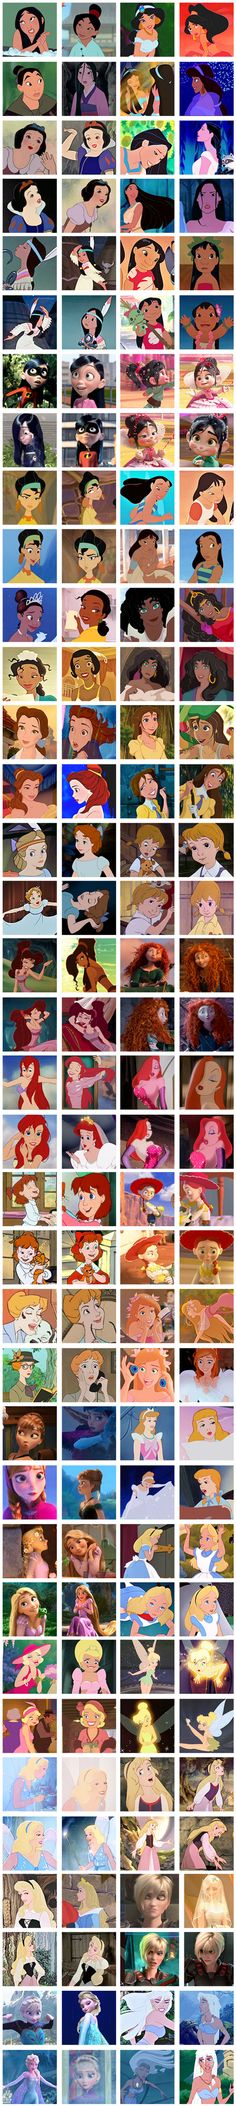 All the Disney ladies. Starts w/ black hair then goes blonde :)